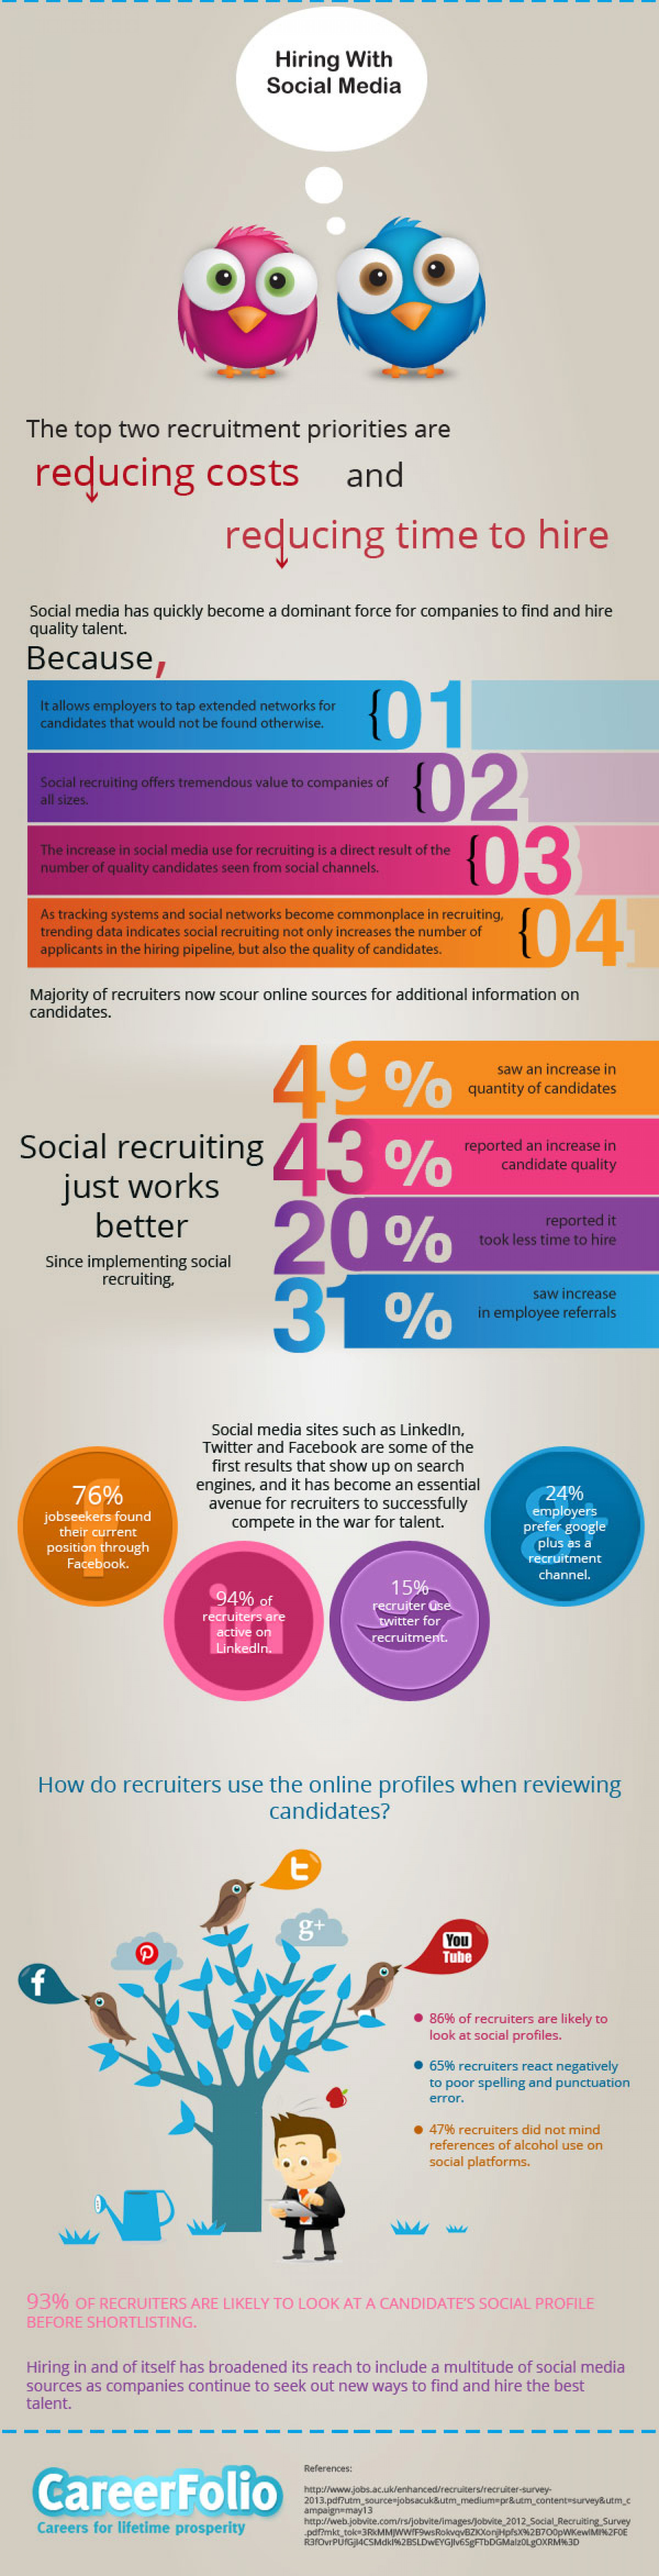 Hiring With Social Media Infographic